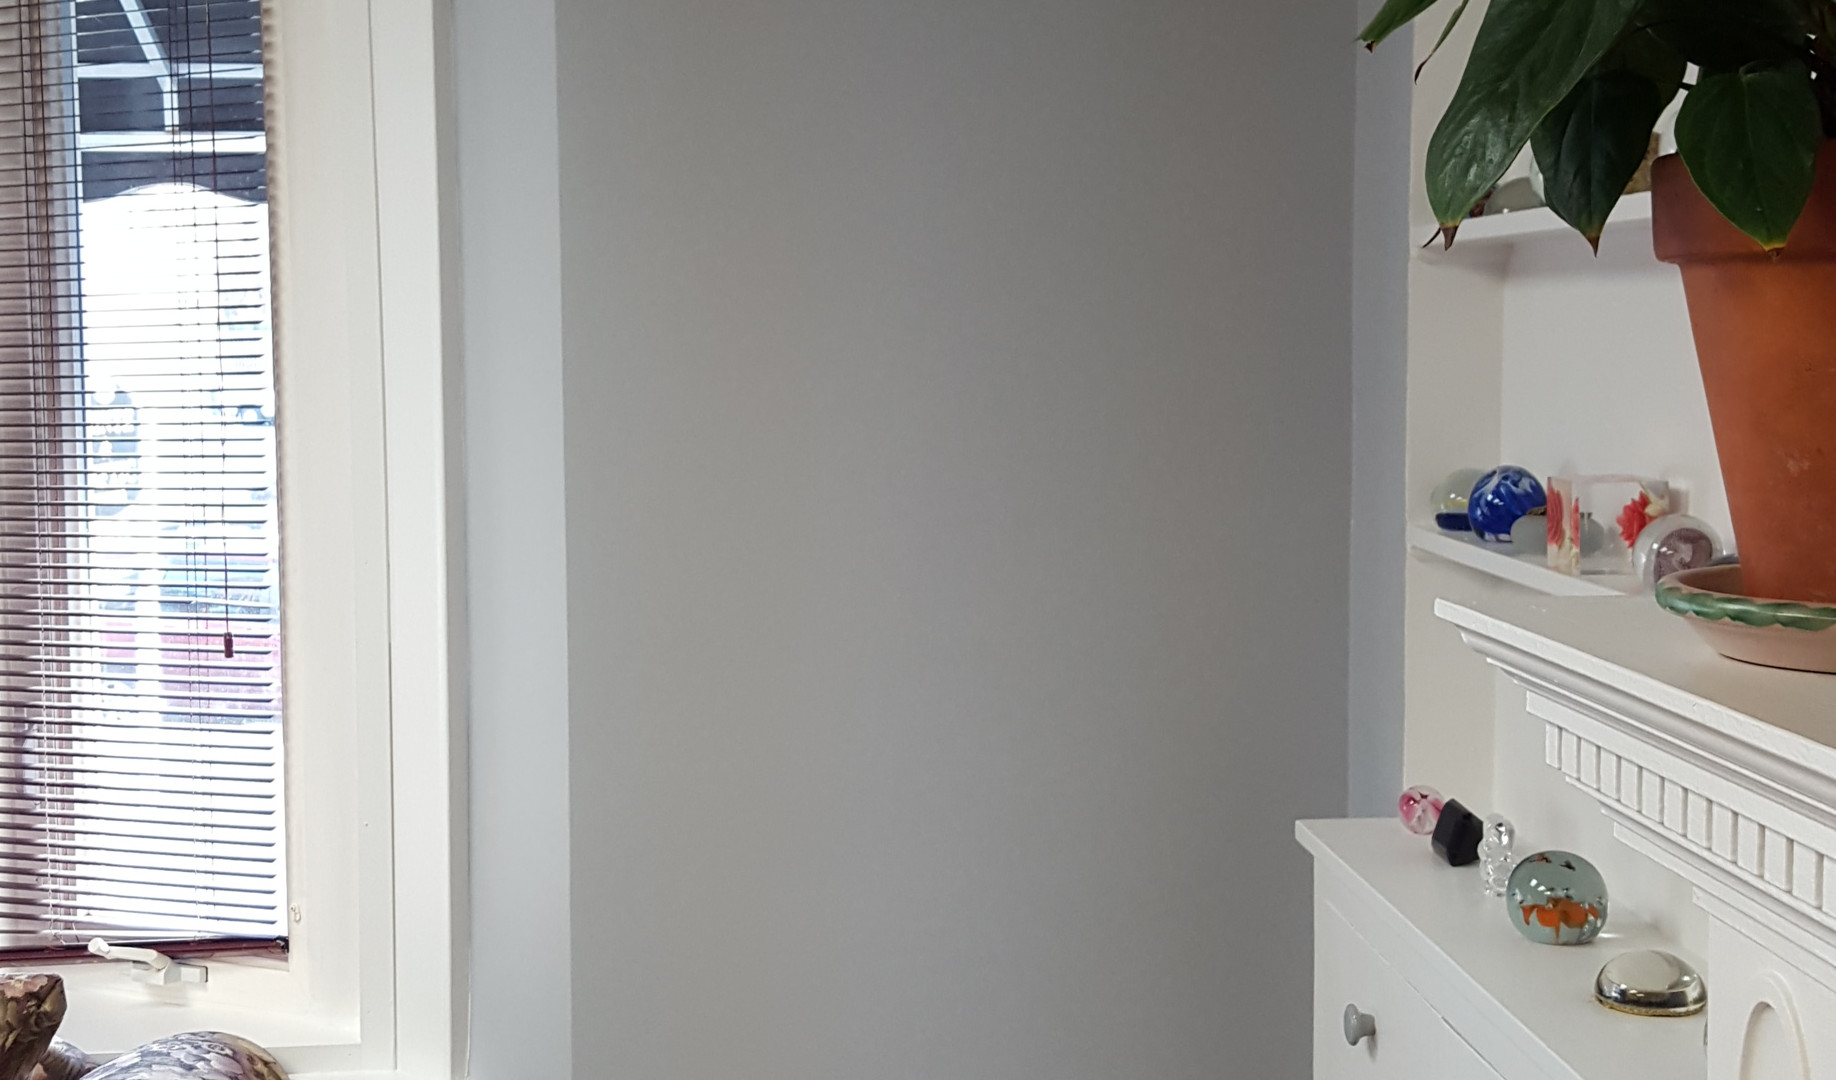 OFFICE WALLS PAINTED